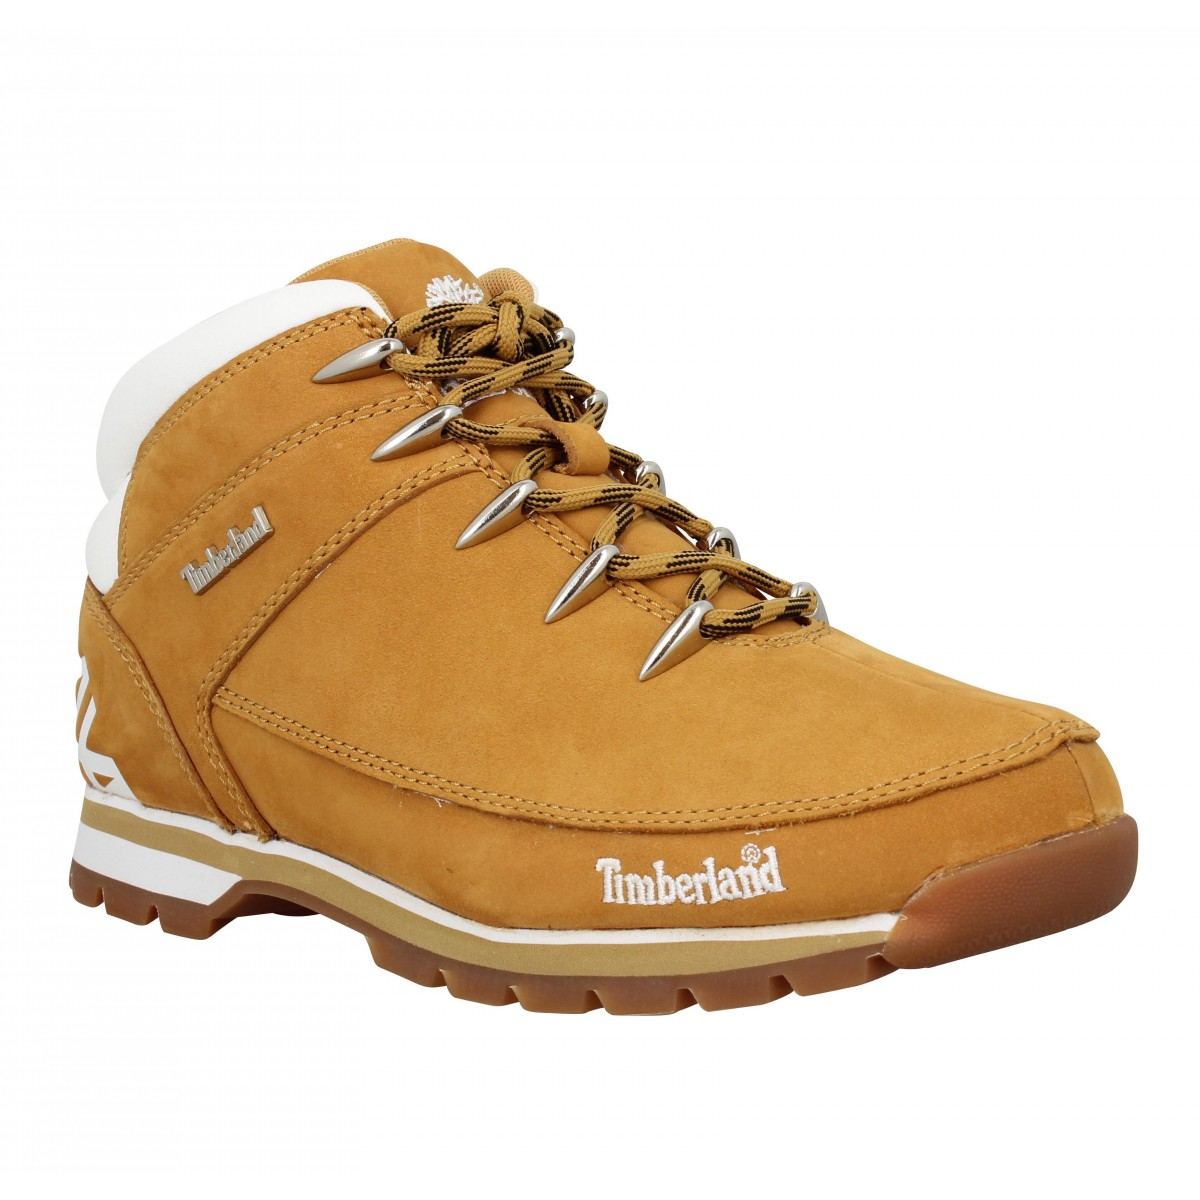 Baskets TIMBERLAND Euro Sprint velours Homme Ocre + Blanc